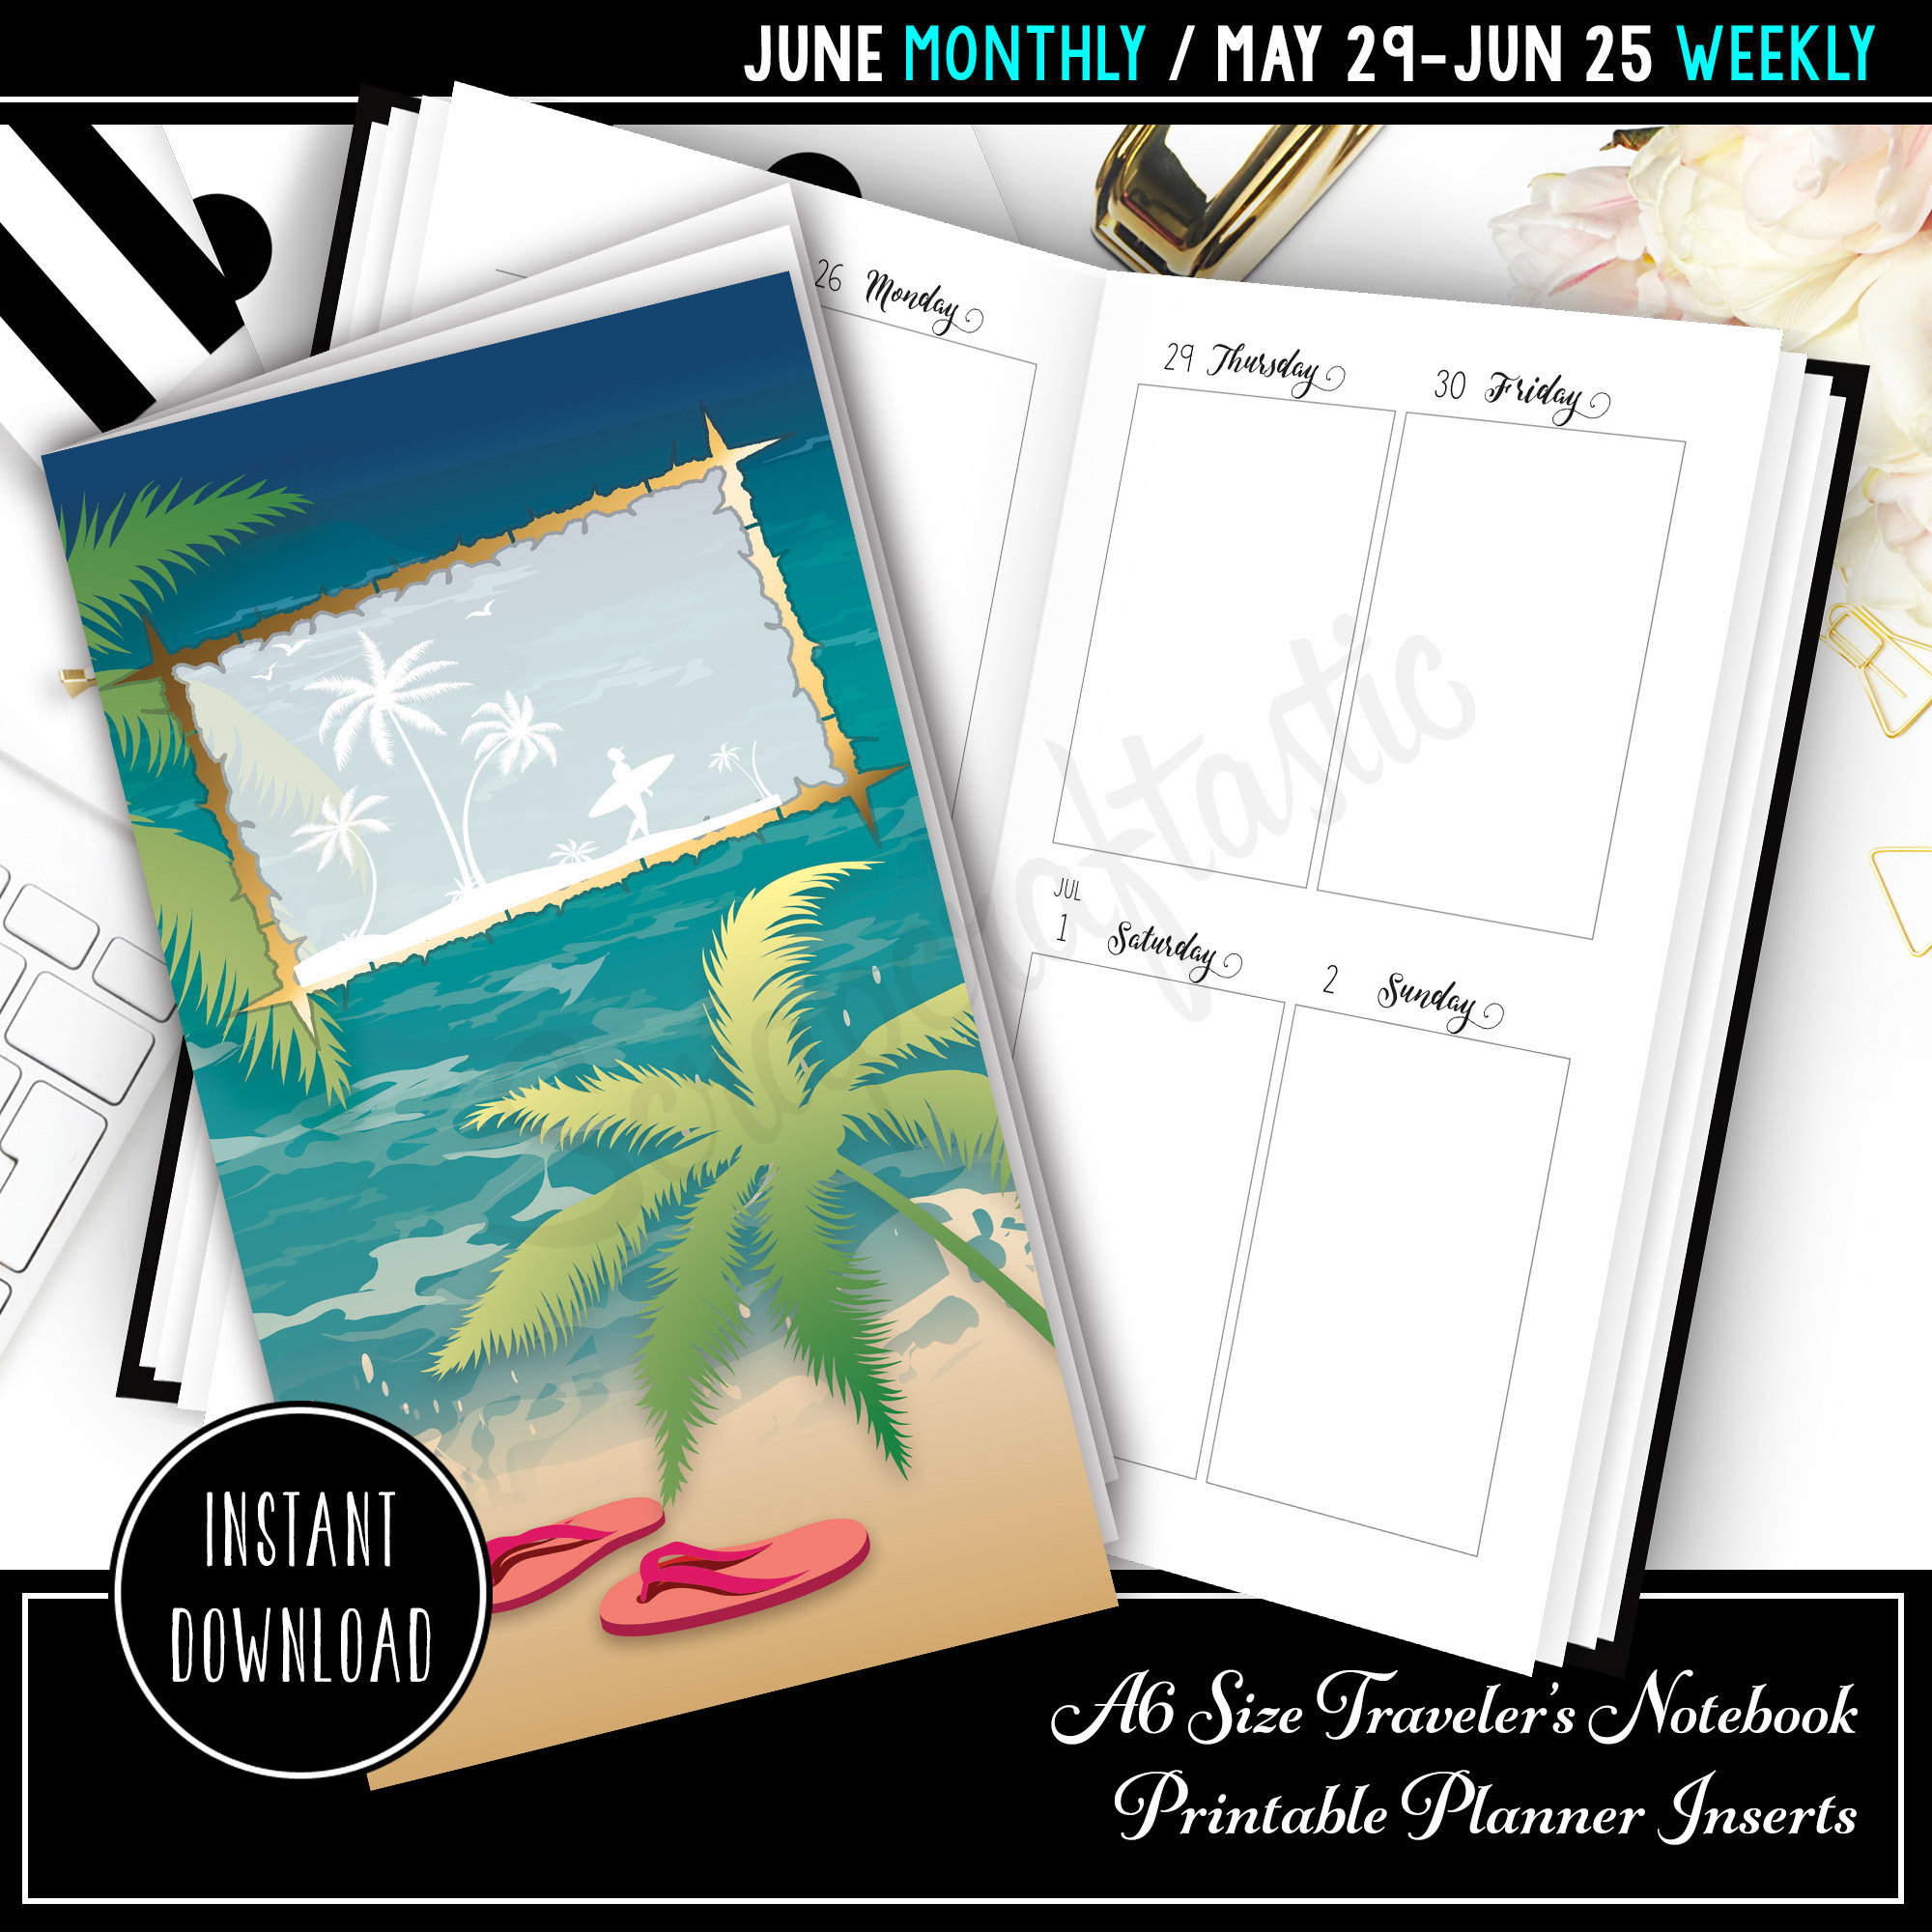 June 2017 A6 Traveler's Notebook Printable Planner Inserts 40000